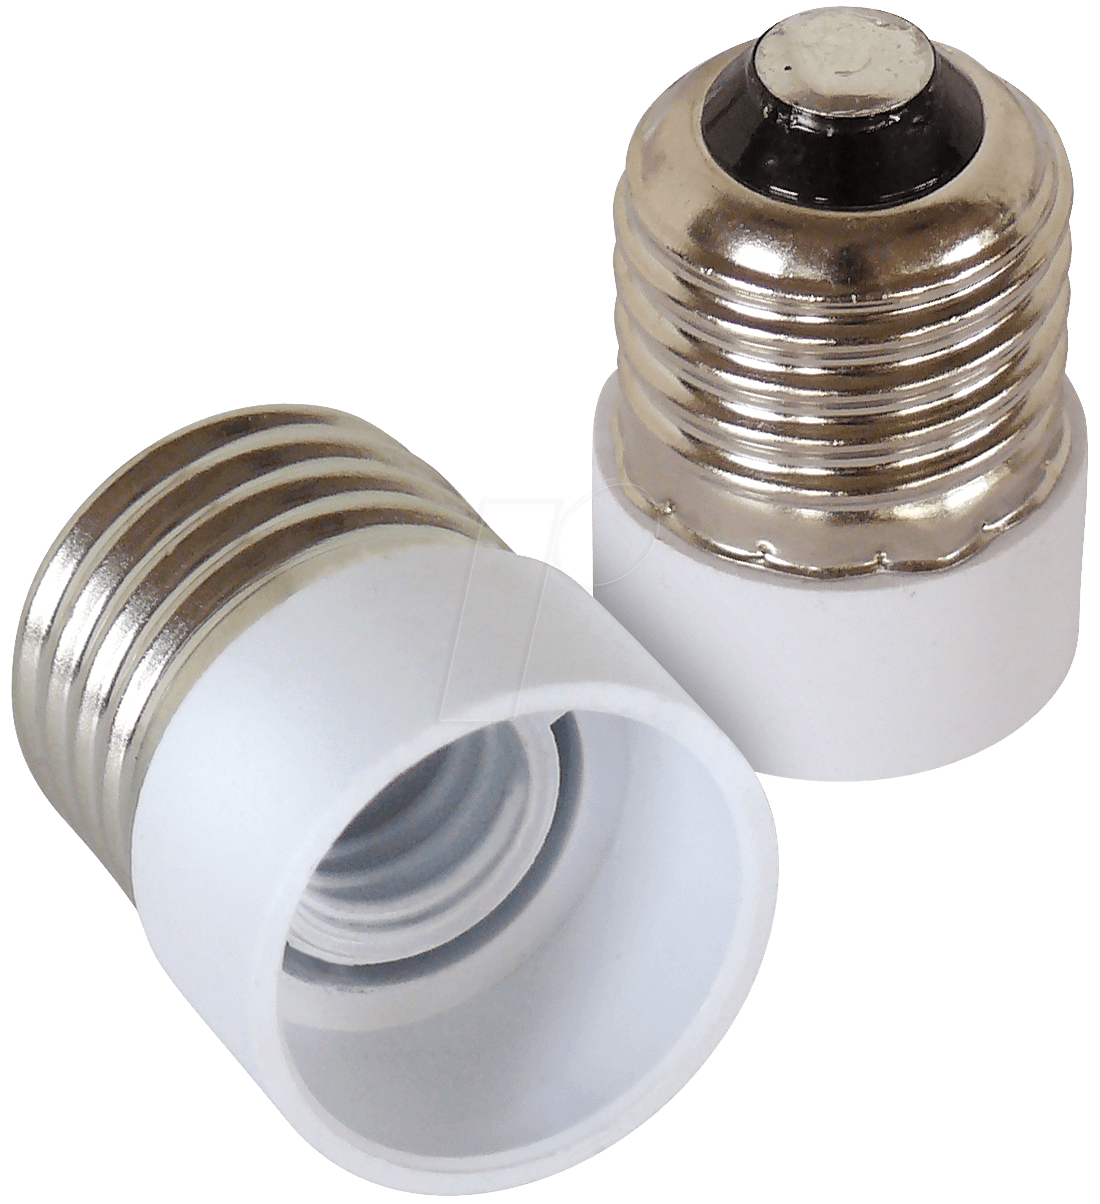 E14 E27 Adapter El Fas E27 E14 Light Bulb Adapter E27 E14 Set Of 2